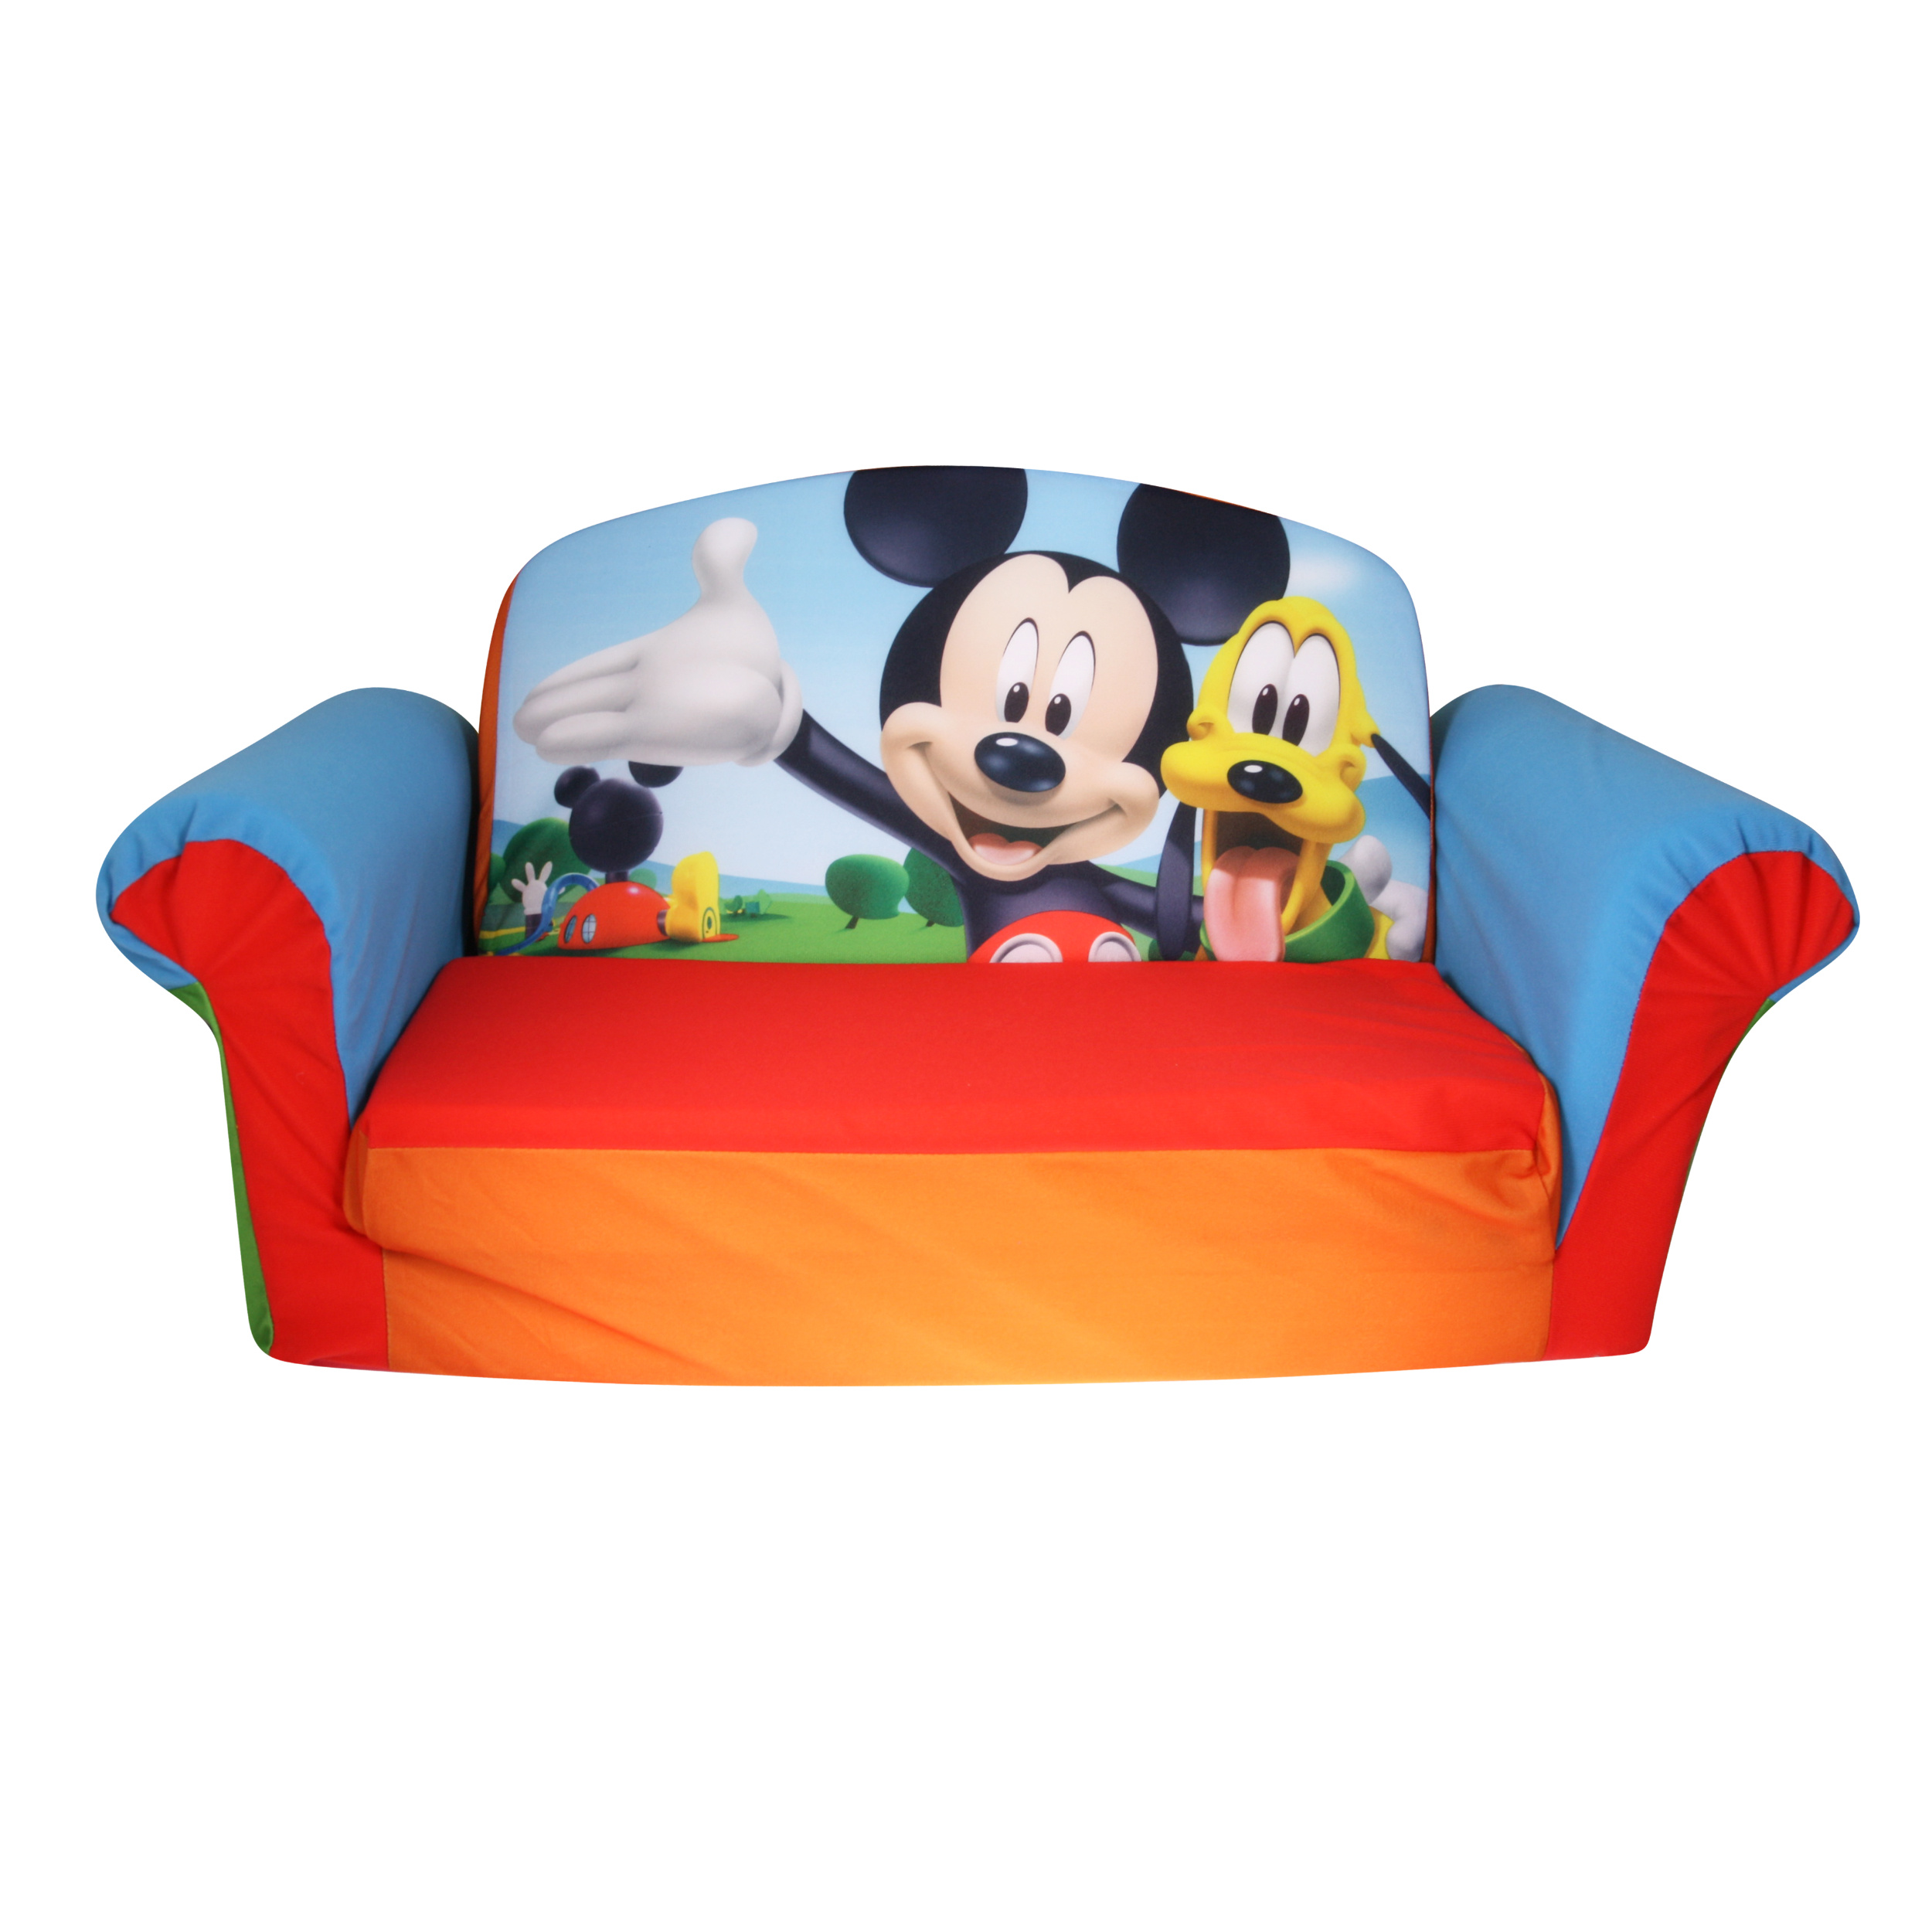 Nice Marshmallow Furniture, Childrenu0027s 2 In 1 Flip Open Foam Sofa, Disney Mickey  Mouse Club House, By Spin Master   Walmart.com